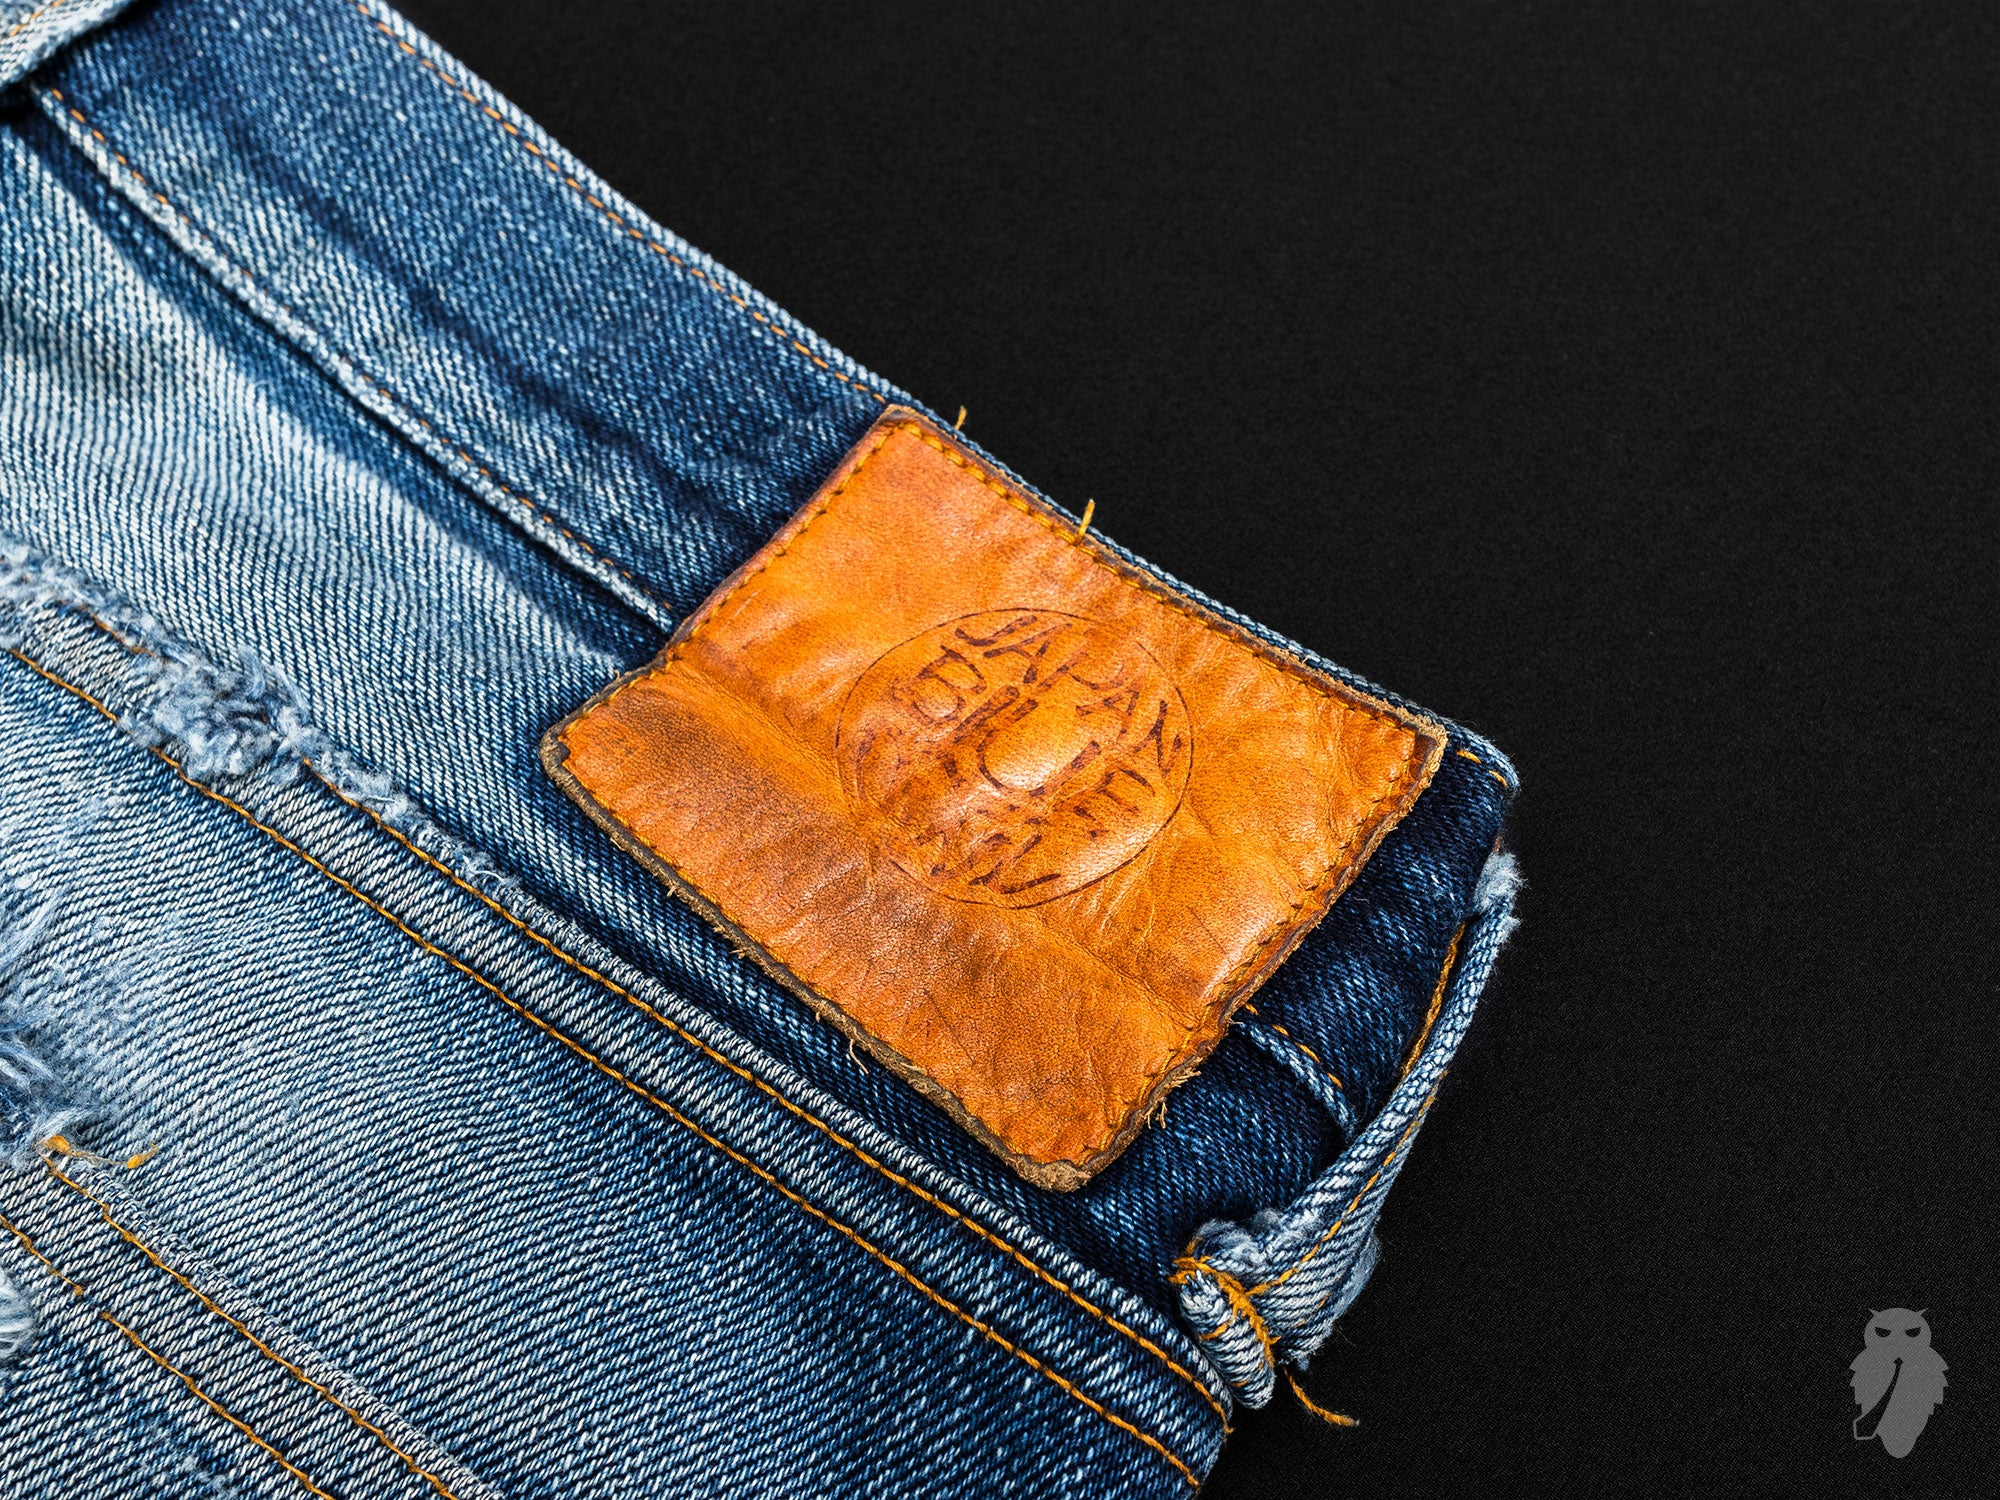 jbo-0212 rear pocket patina